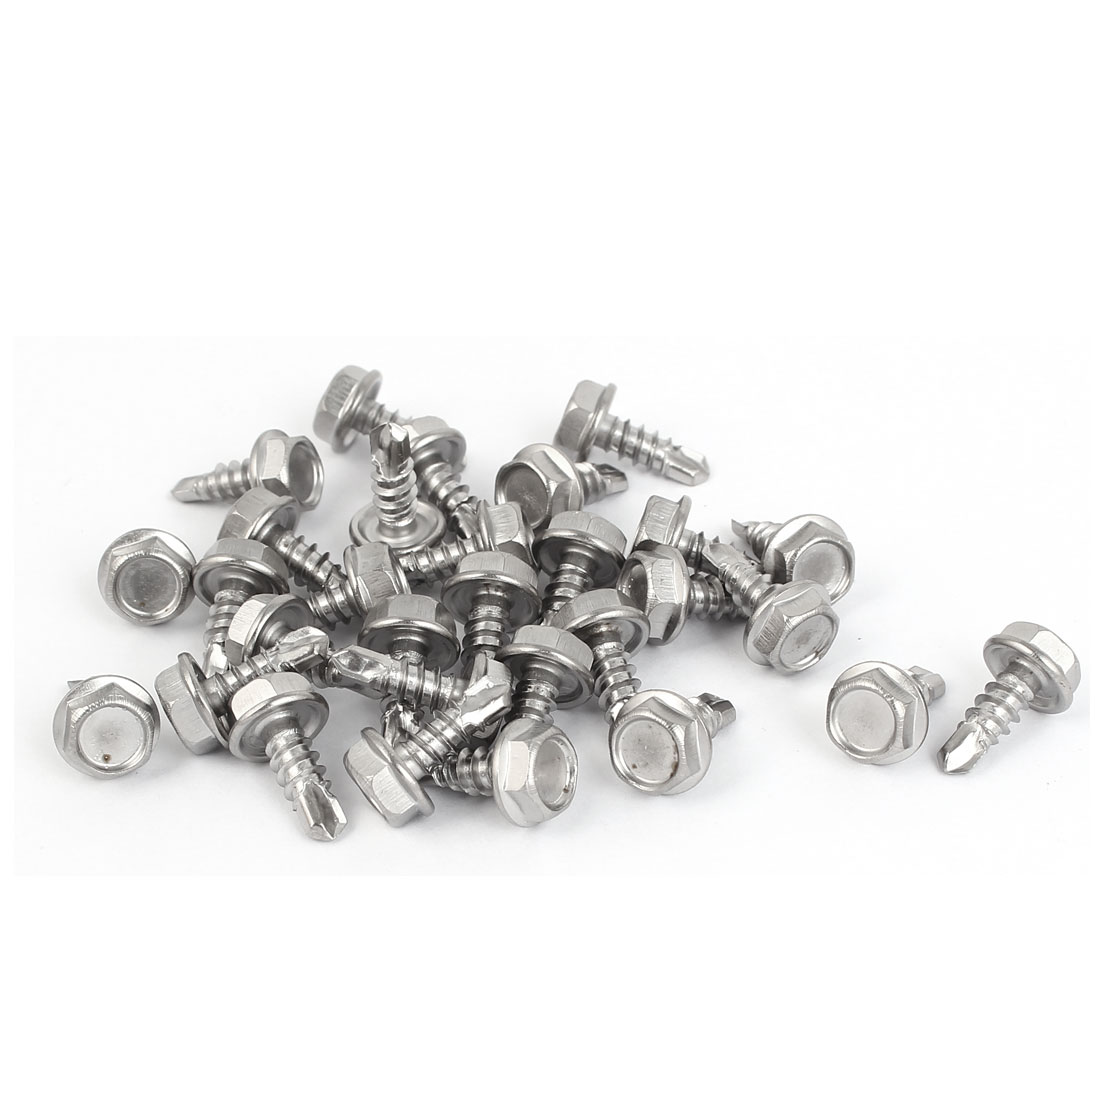 M4.8 x 13mm #10-16 Male Thread Hex Washer Head Self Drilling Screws Bolts 30 Pcs